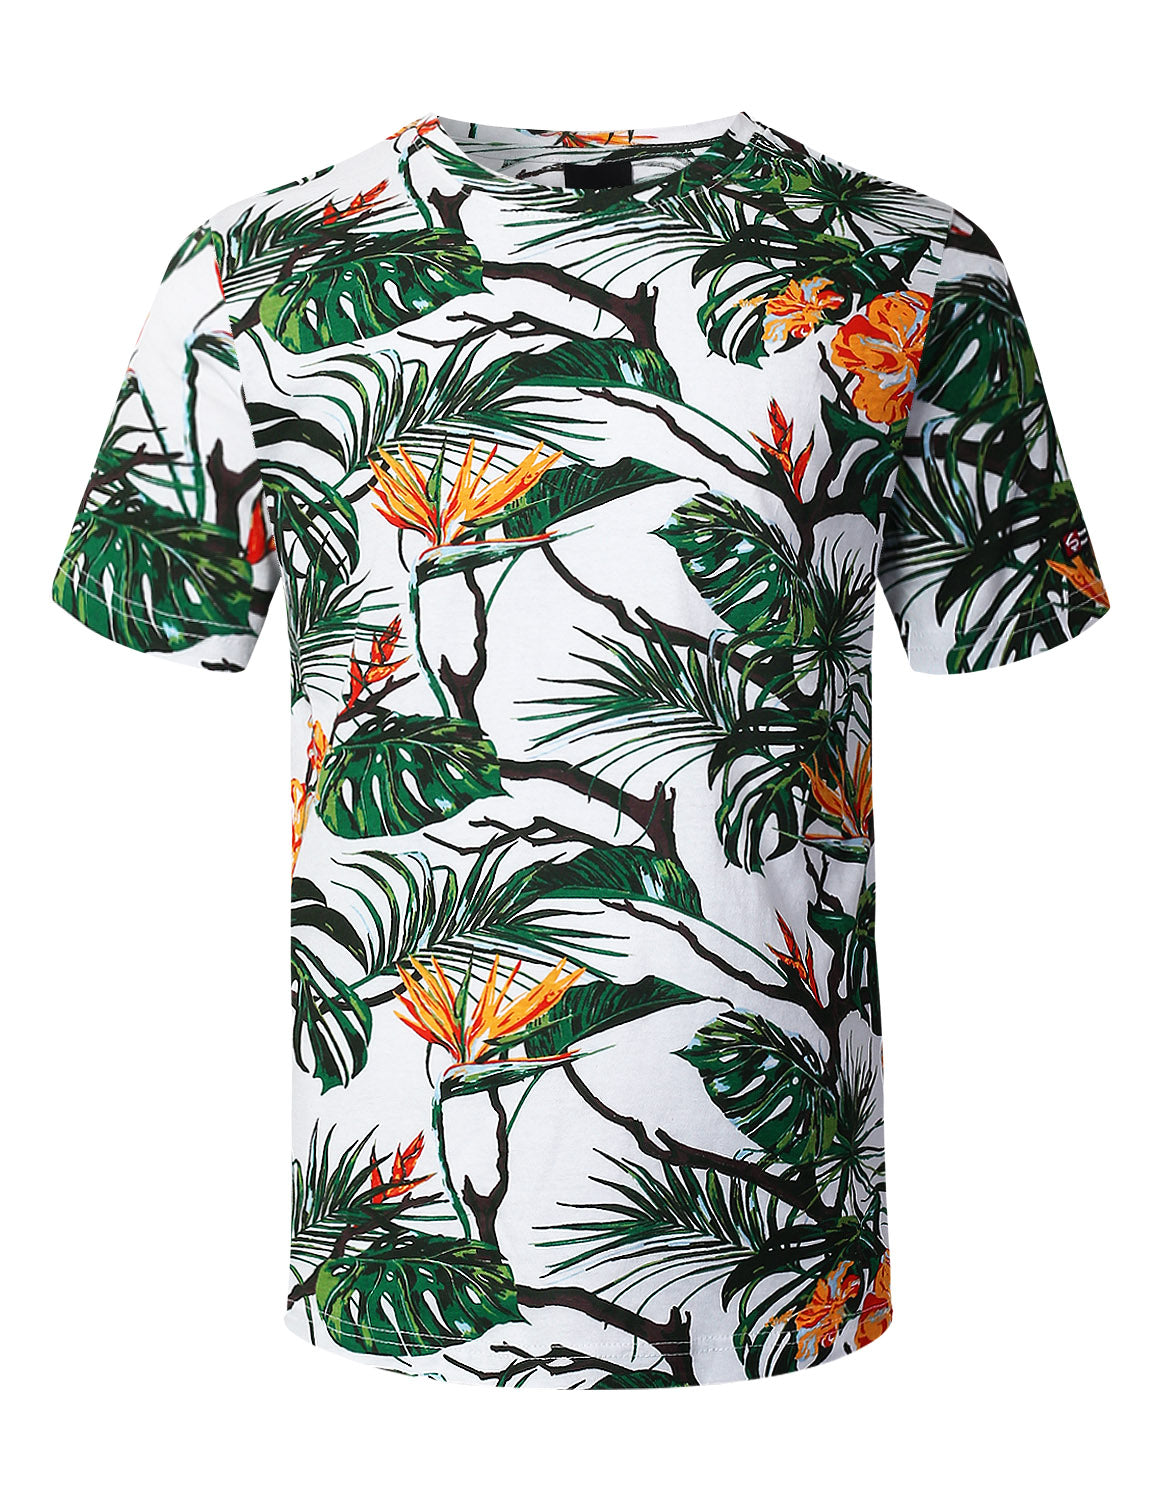 OLIVE Tropical Allover Print T-shirt - URBANCREWS